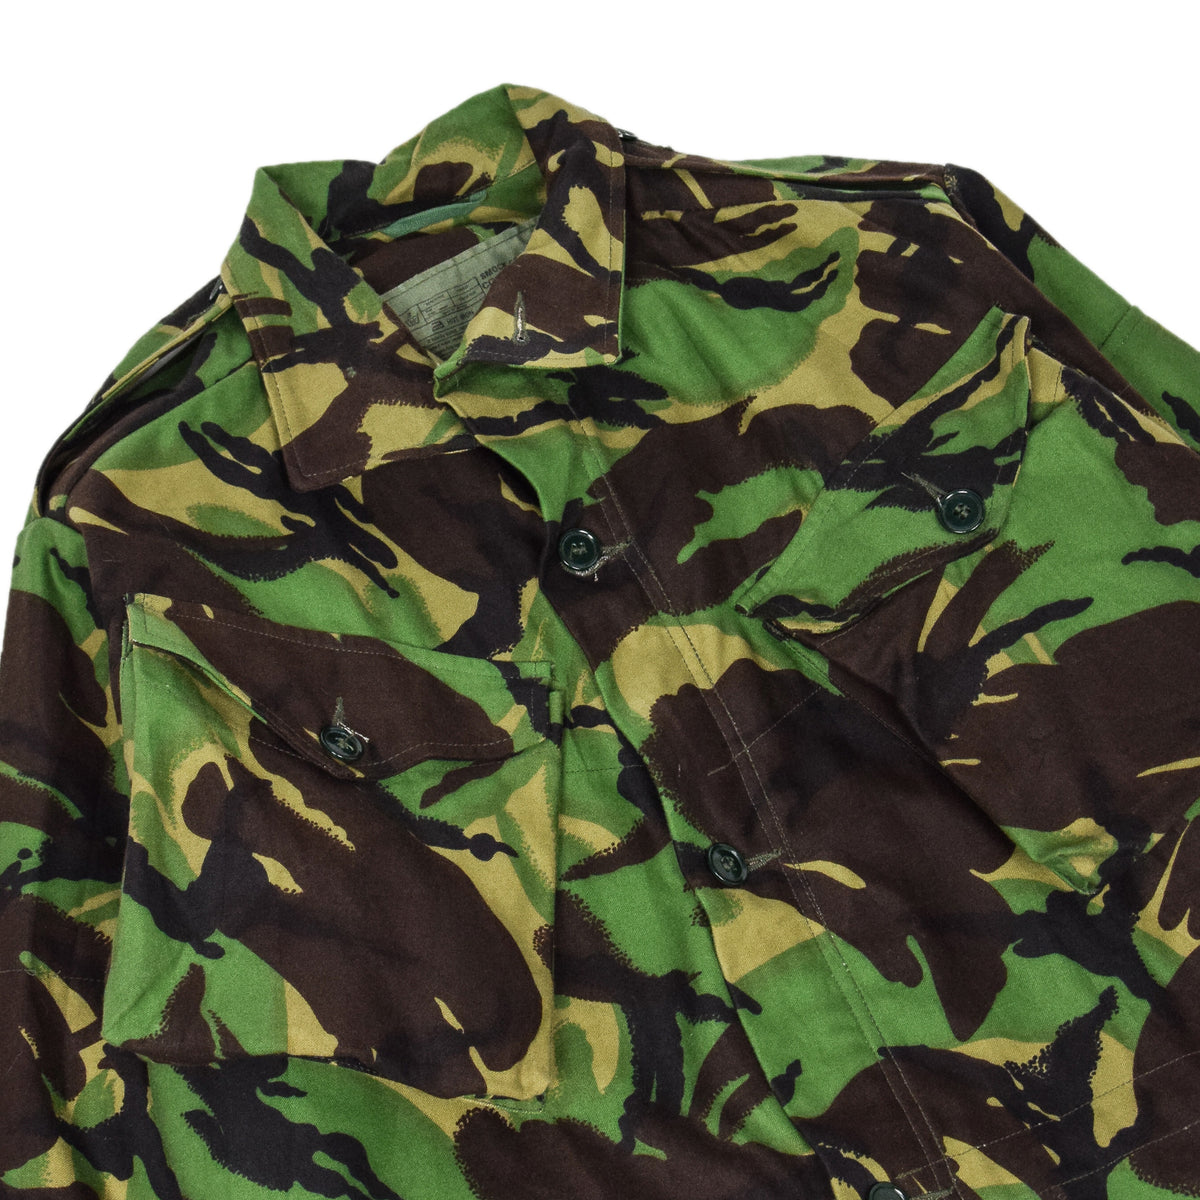 Vintage 90s British Army Combat Smock Woodland DPM Camo Jacket M CHEST